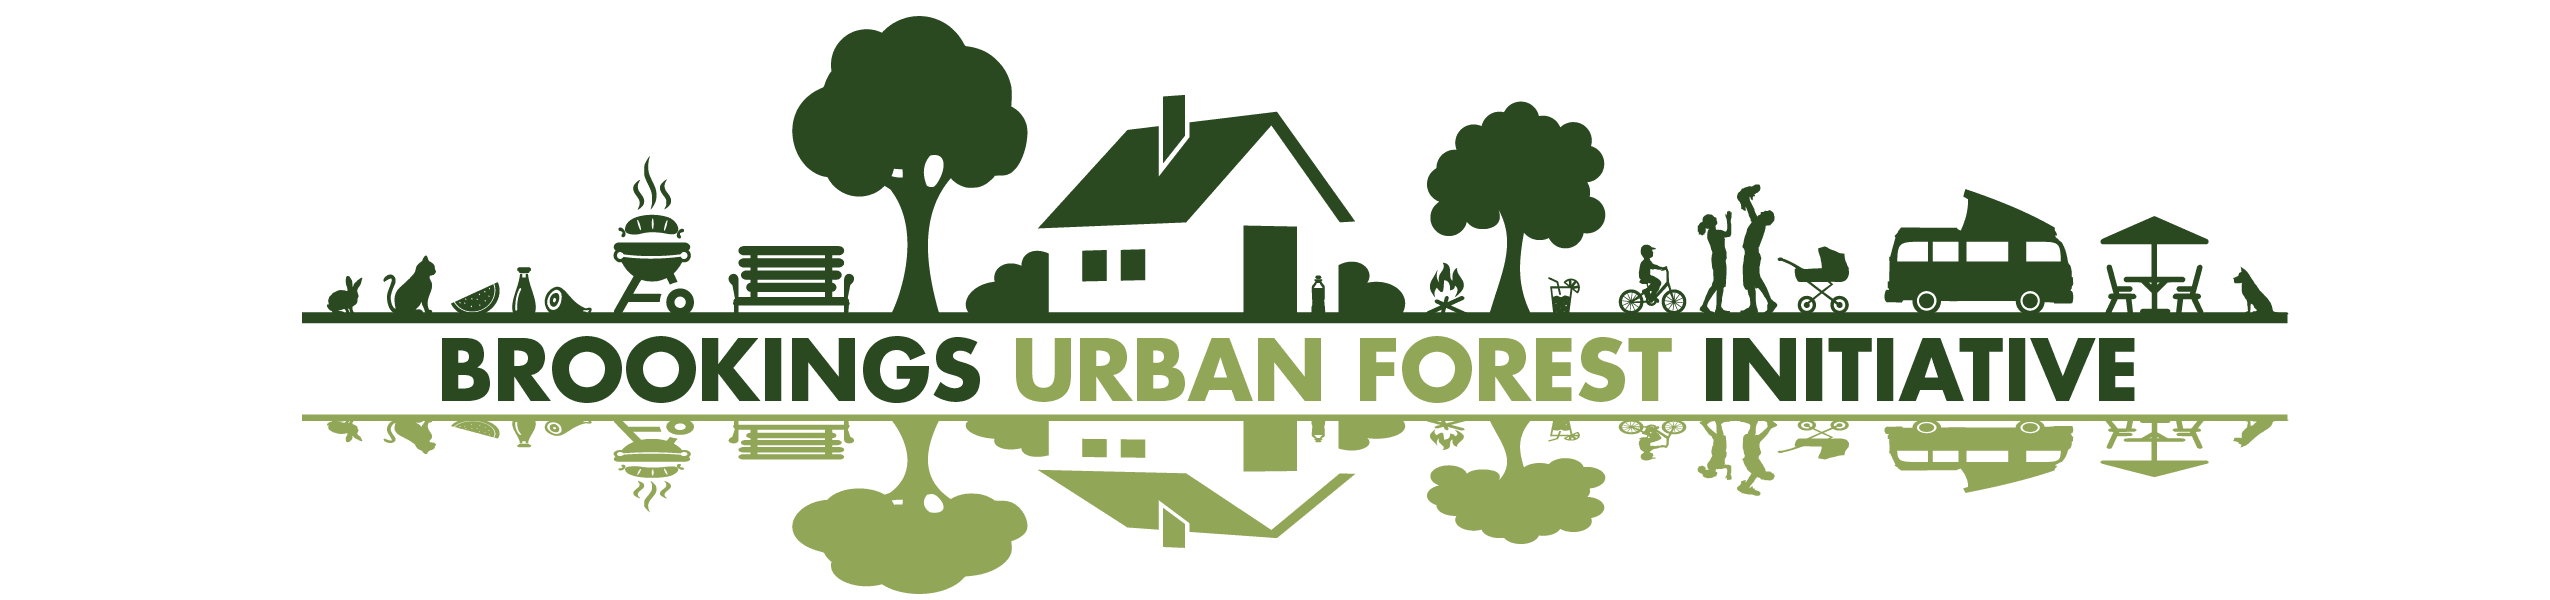 Graphic of a neighborhood with trees With text that says Brookings Urban Forest Initiative